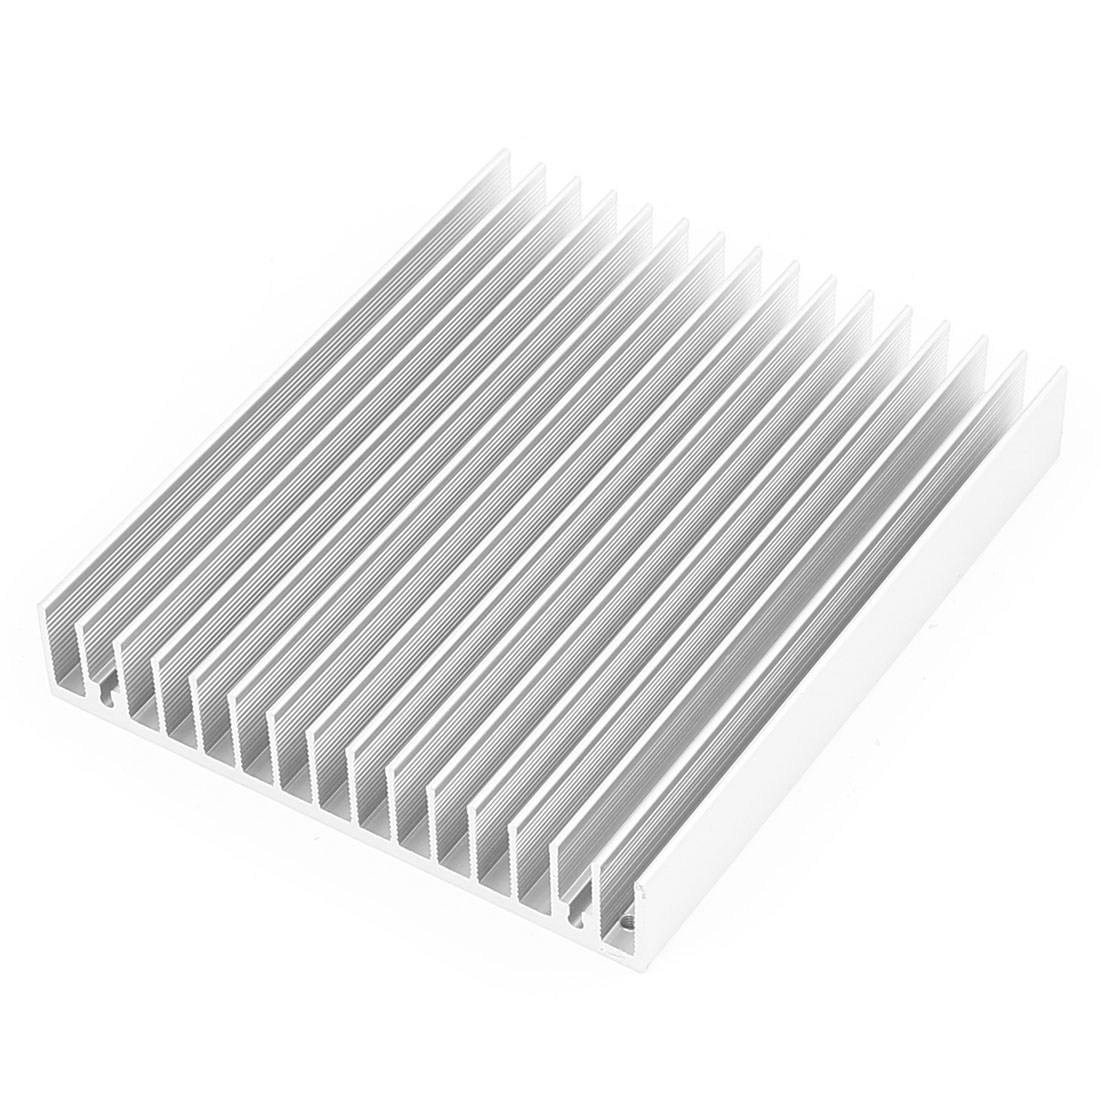 120mm x 100mm x 18mm Aluminium Radiator Cooling Fin Heatsink Heat Sink for PC Motherboard